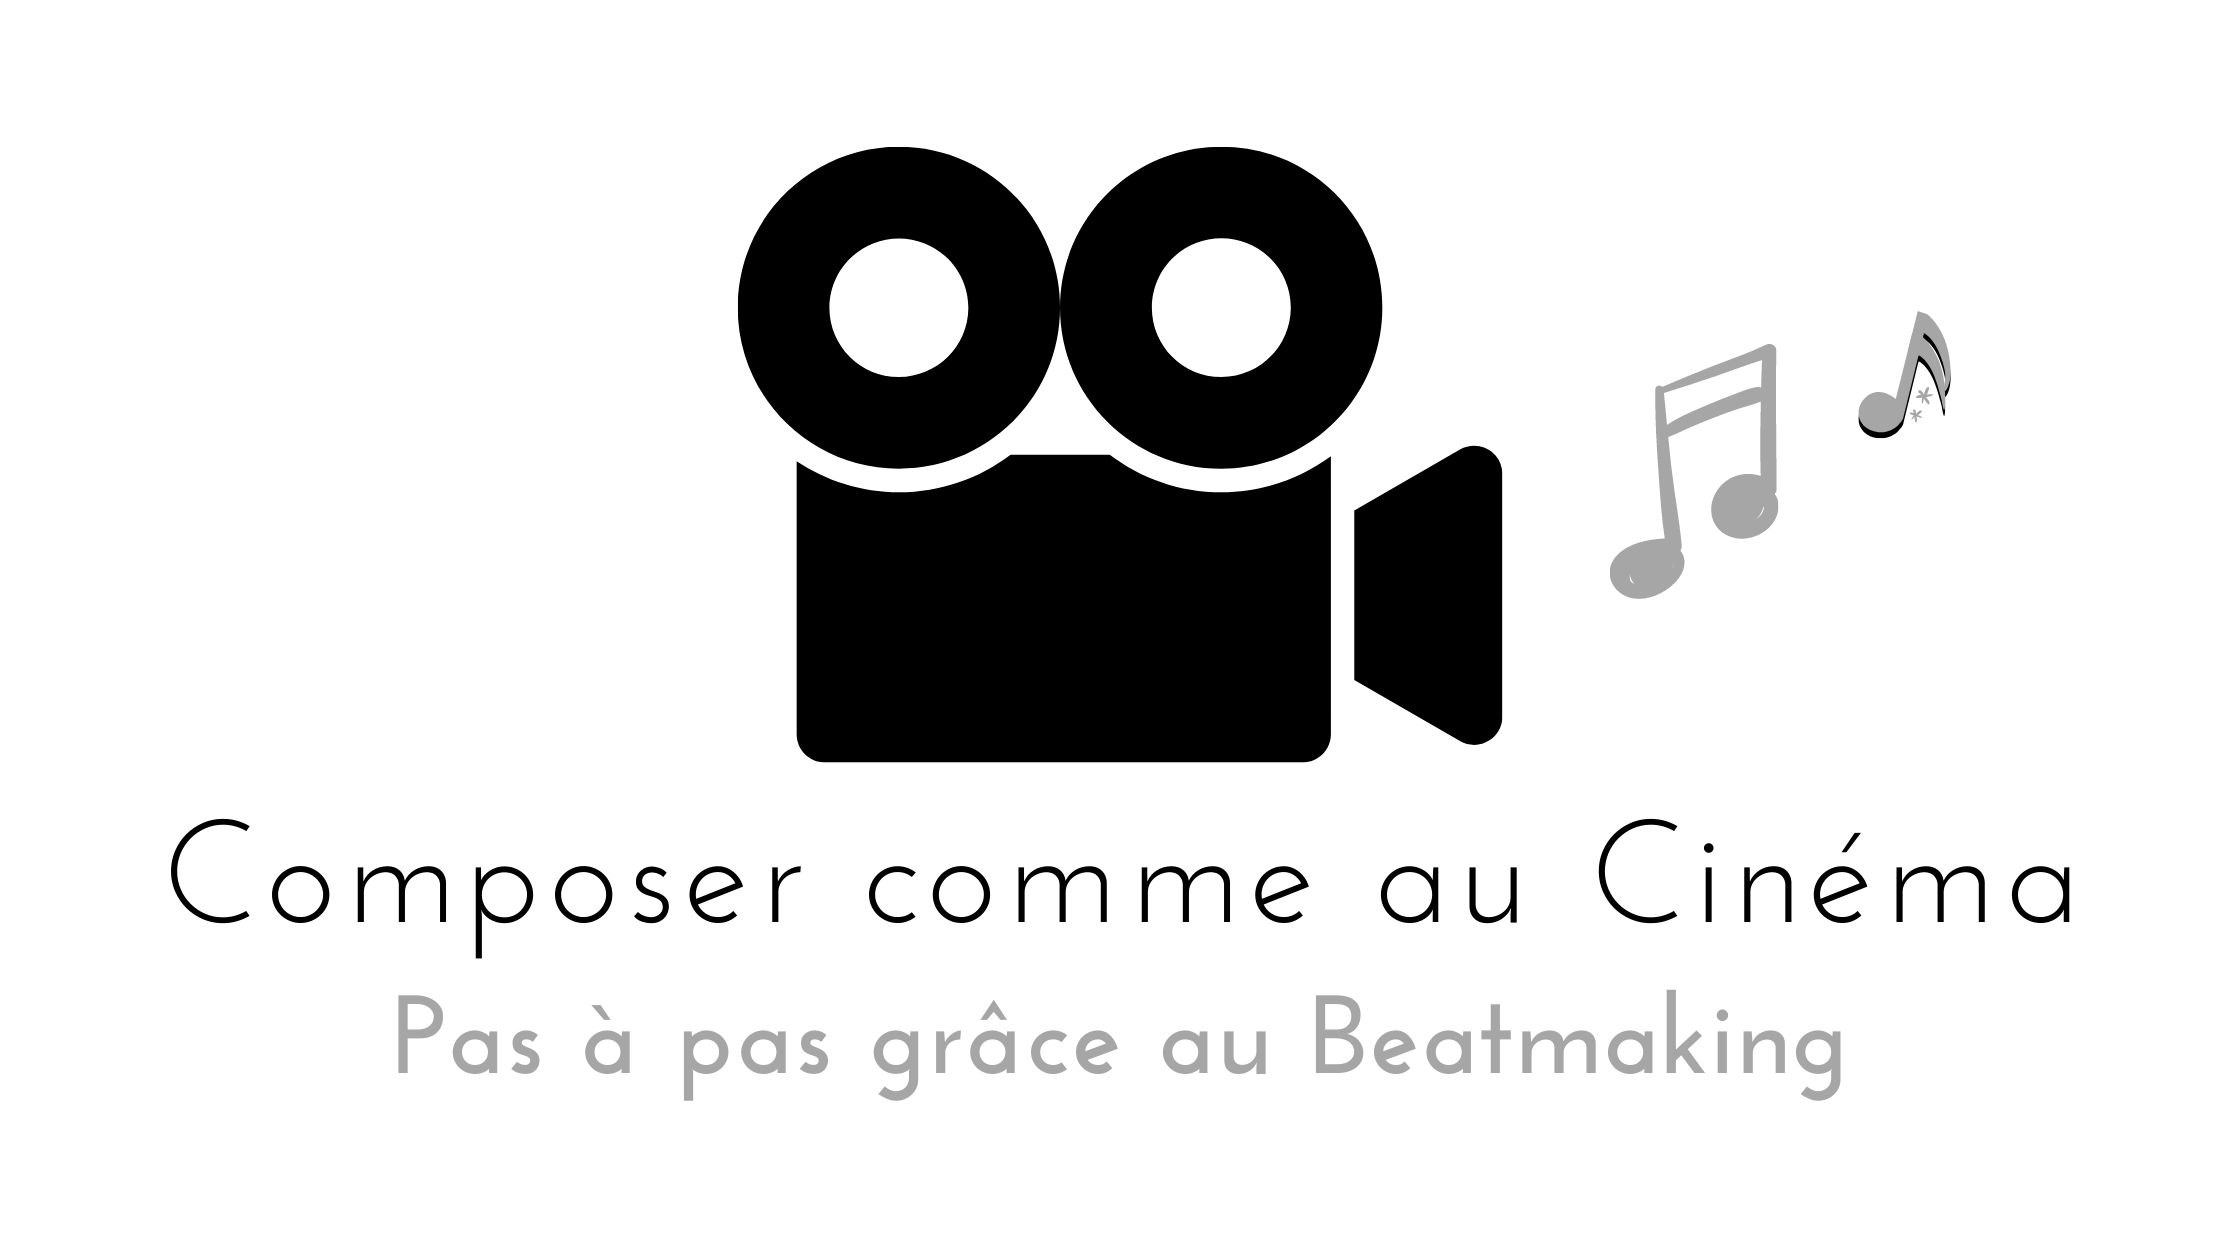 Composer comme au cinema